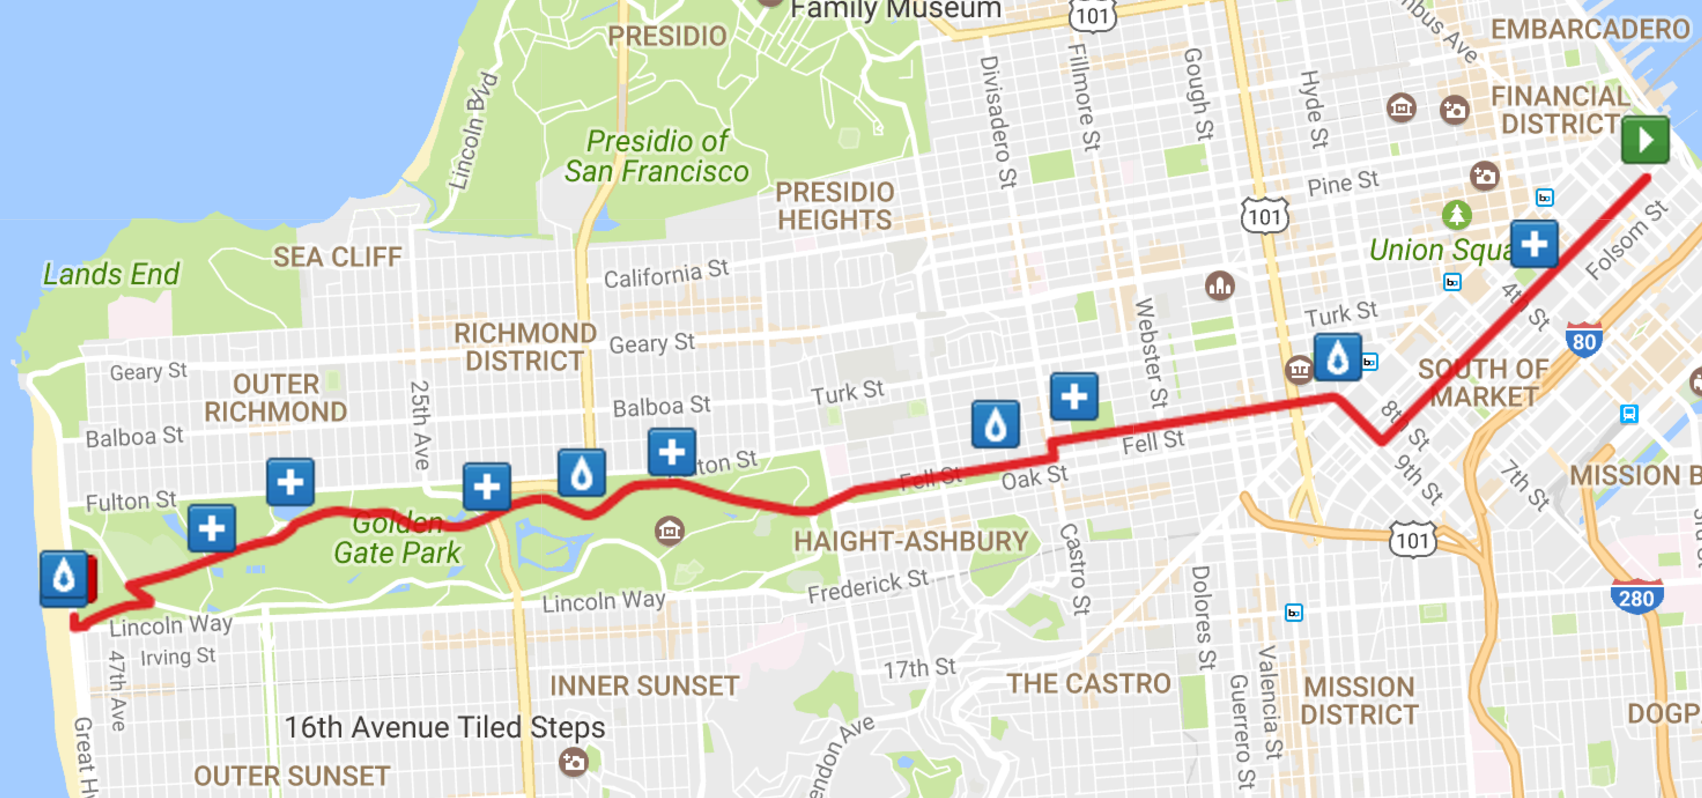 Bay To Breakers Map Bay To Breakers Street Closures, Reroutes On Sunday | Hoodline Bay To Breakers Map